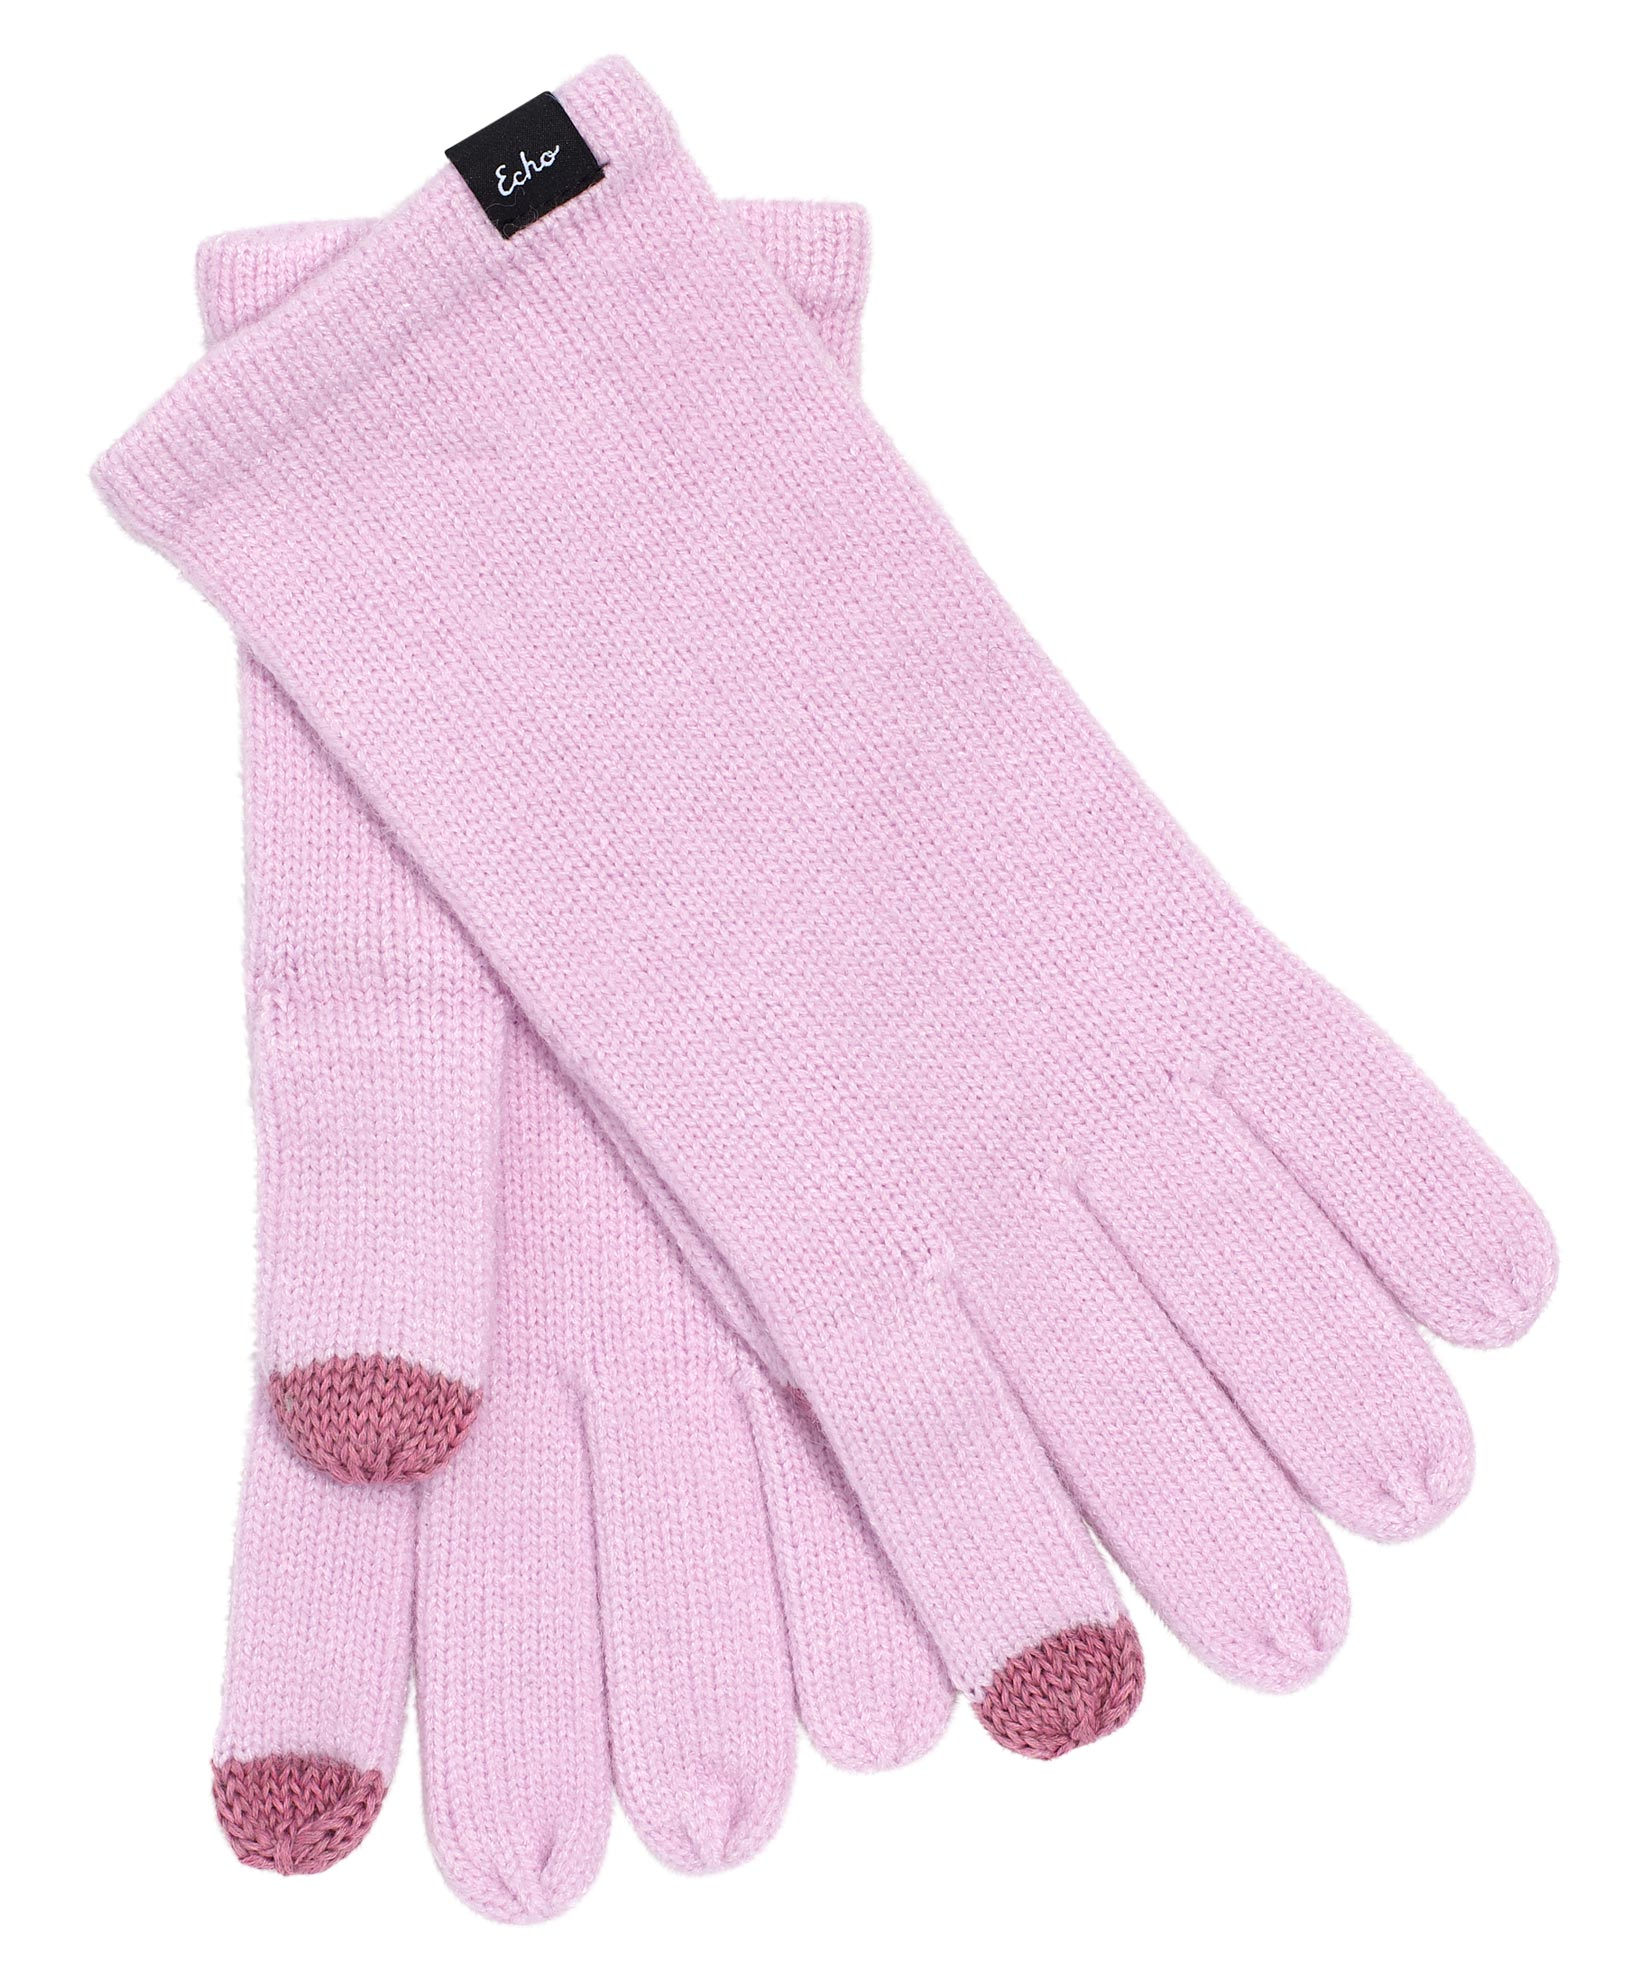 Pale Lilac - Echo Knit Touch Glove